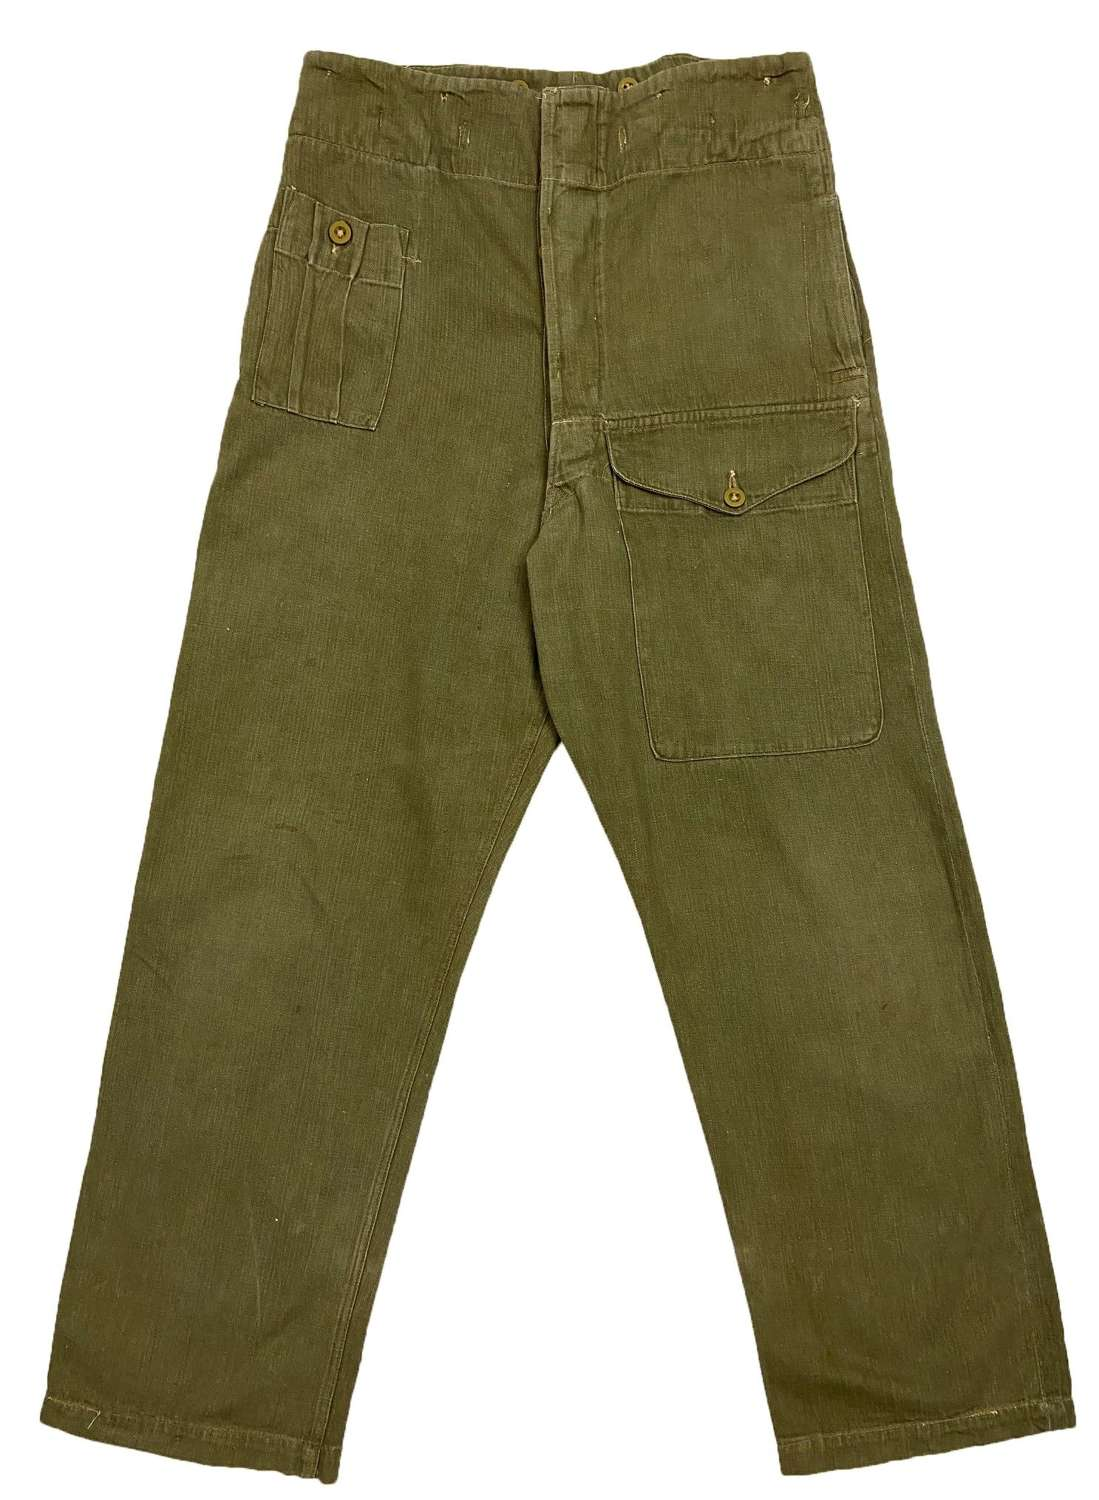 Original 1950 Dated British Army Denim Battledress Trousers - Size 7